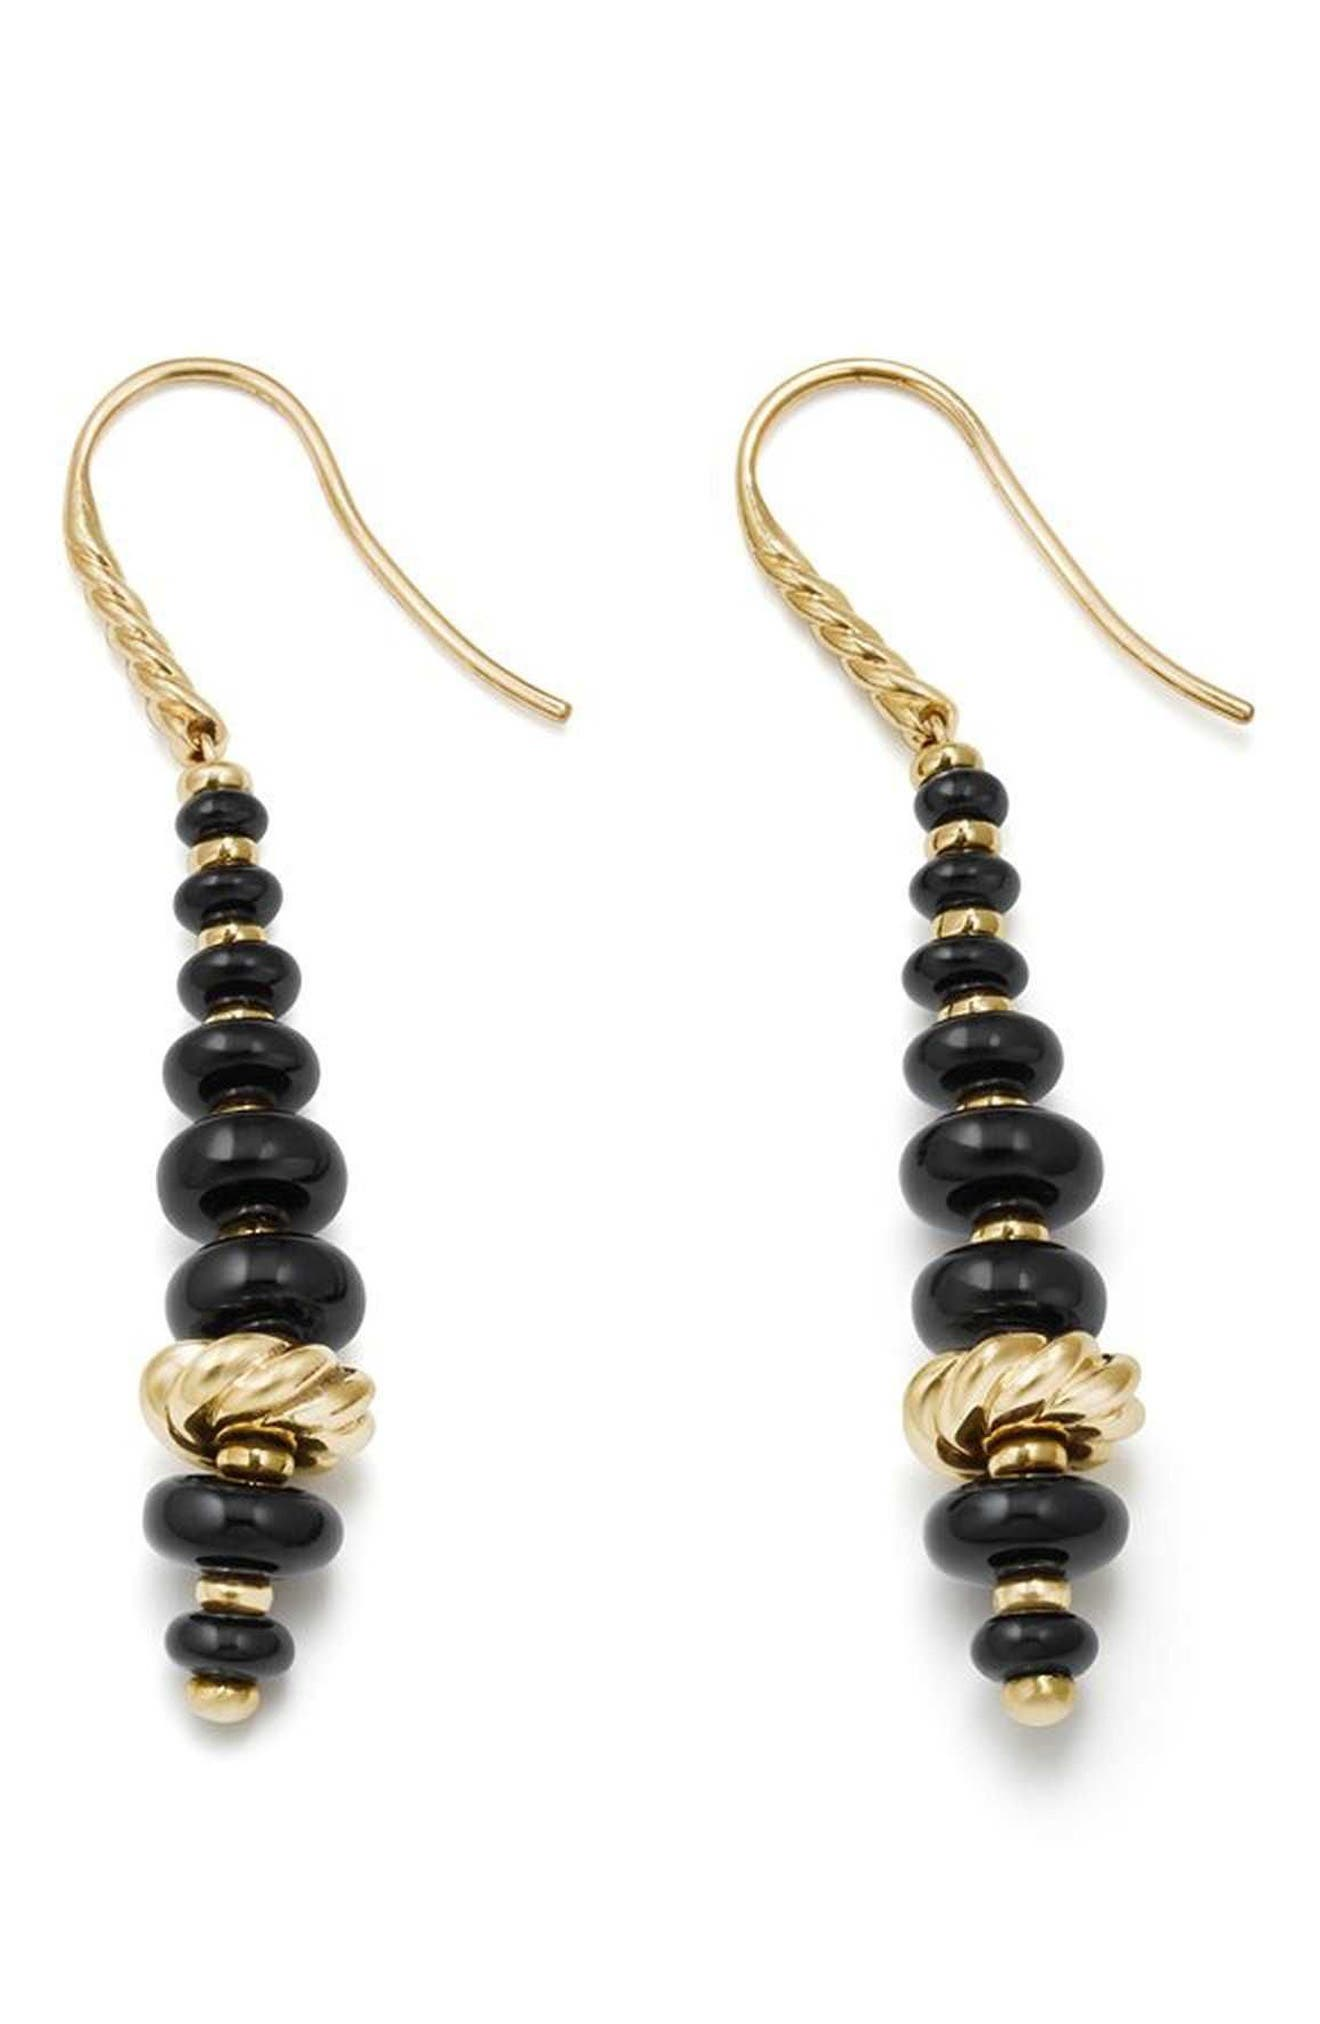 Rio Rondelle Drop Earrings in 18K Gold,                             Alternate thumbnail 2, color,                             GOLD/ BLACK ONYX